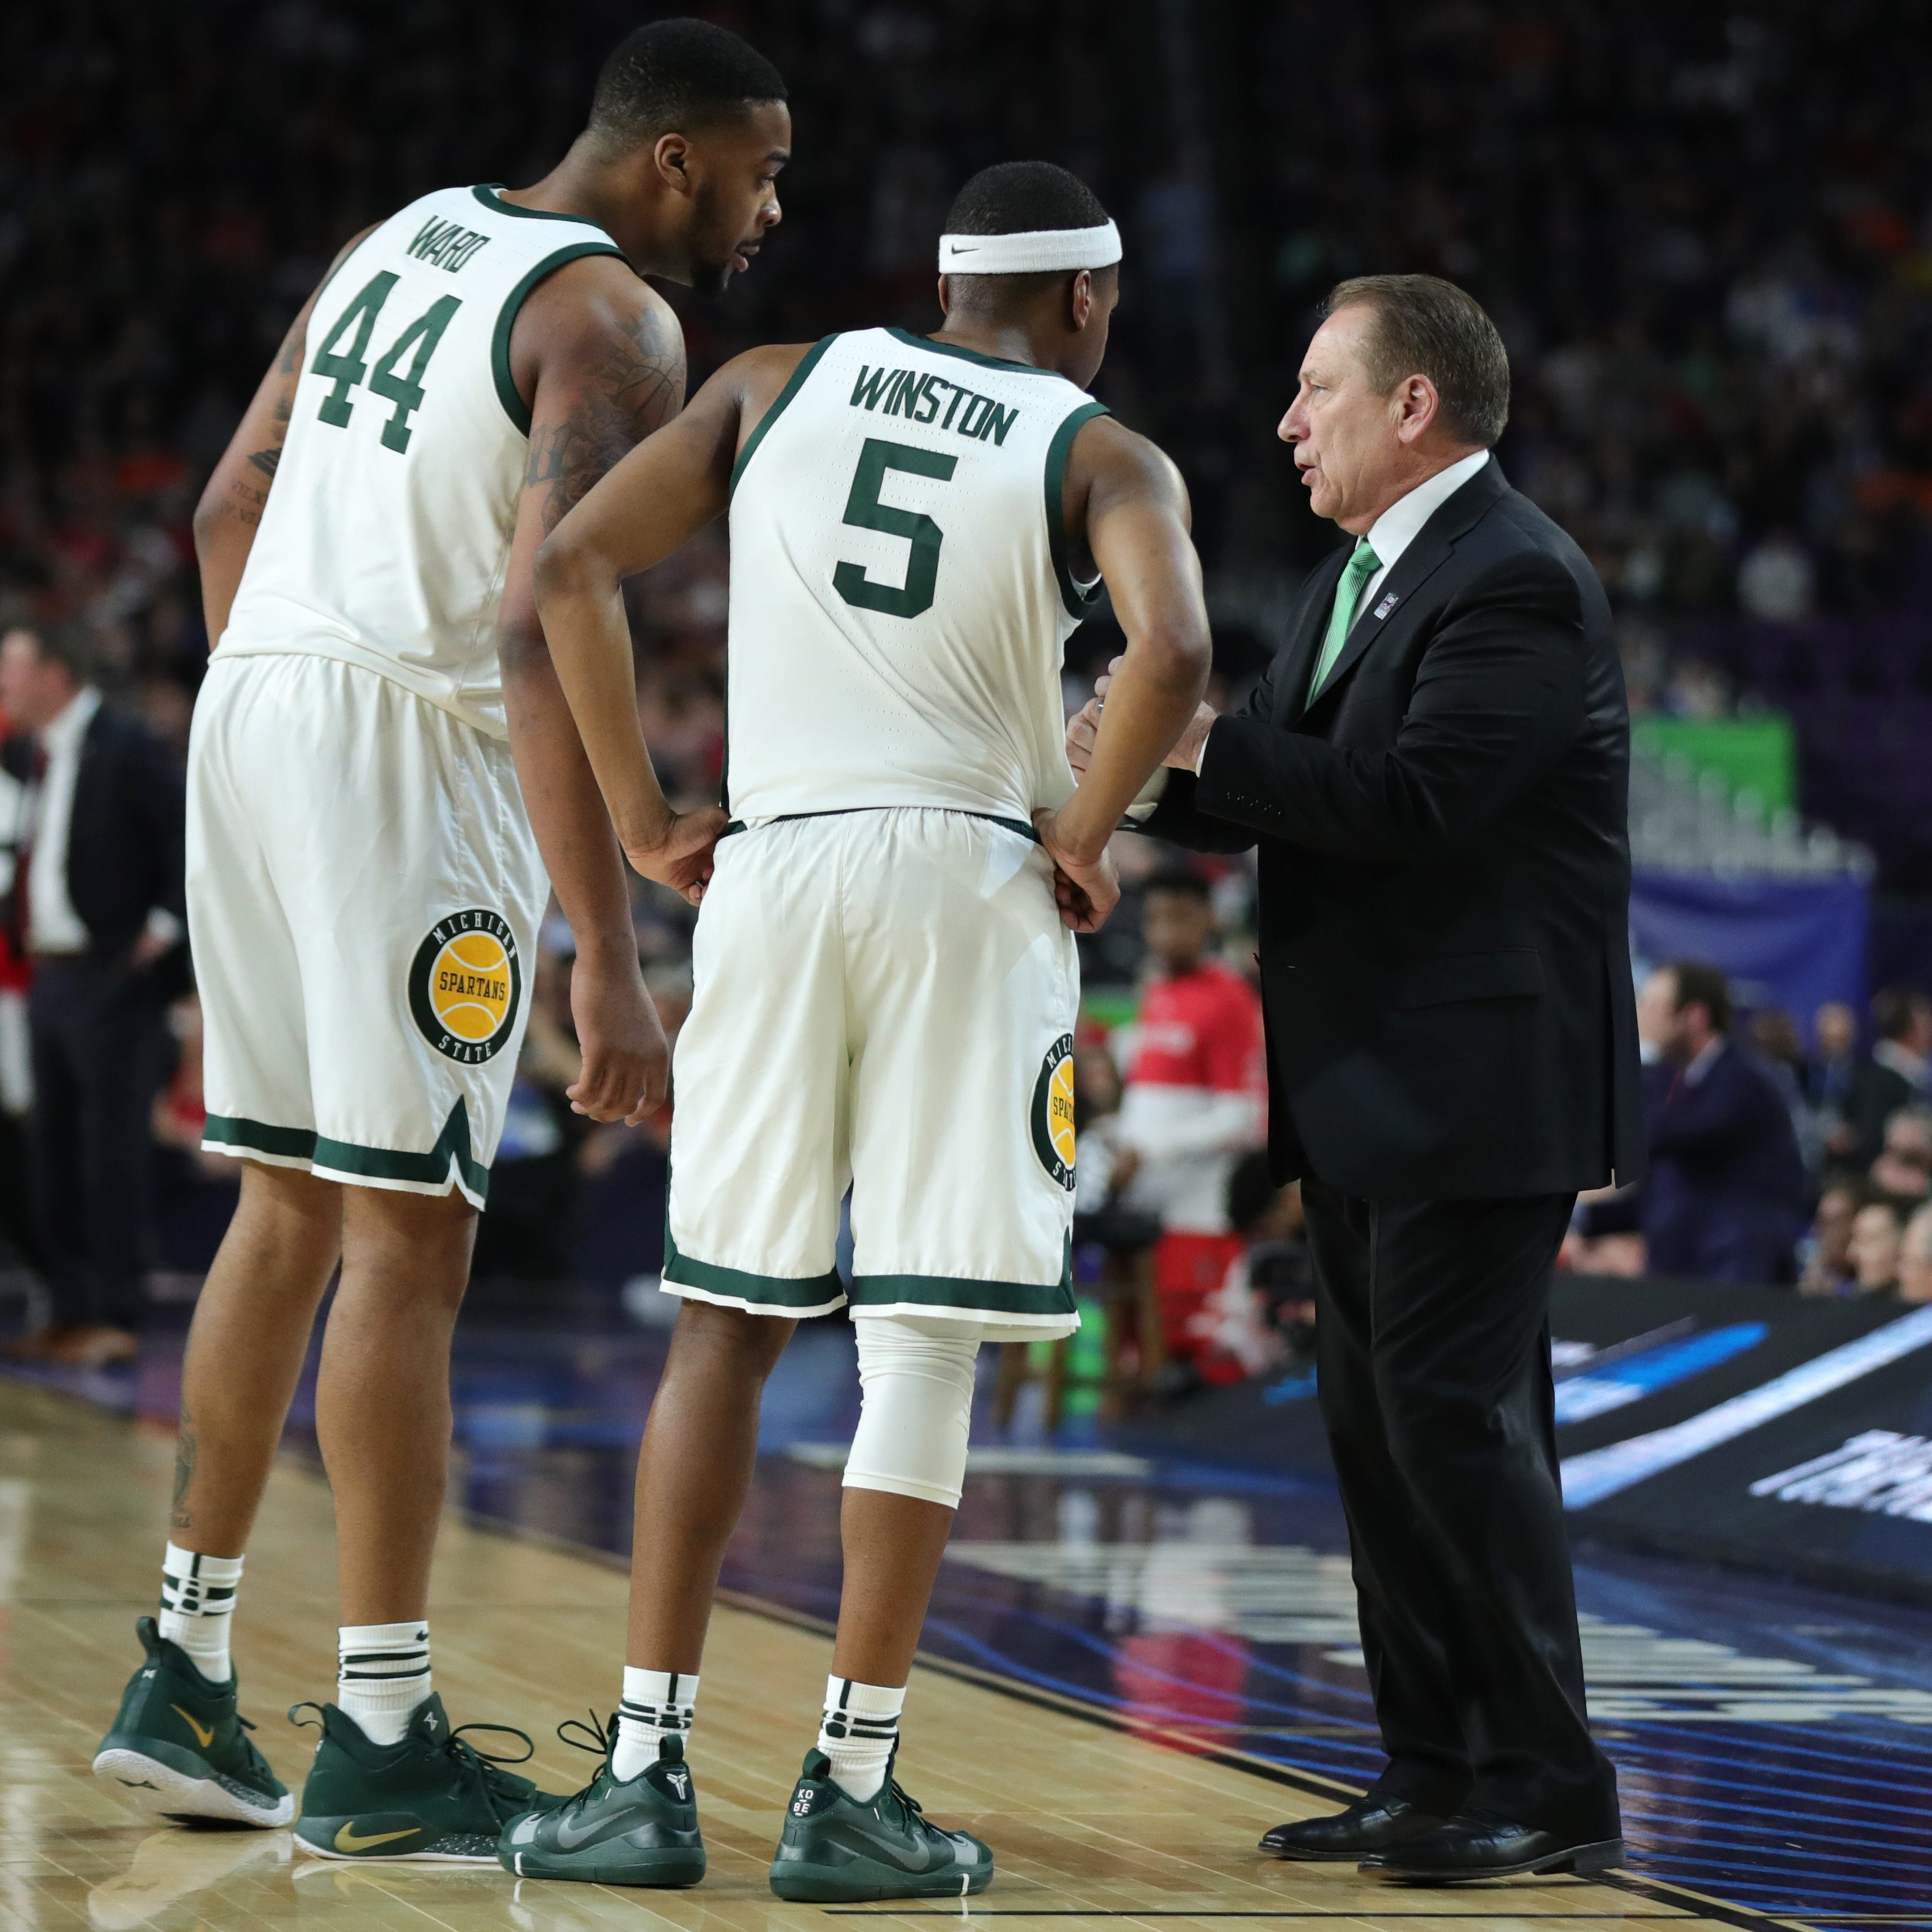 Michigan State players face decision: Chase NCAA title or test NBA draft?